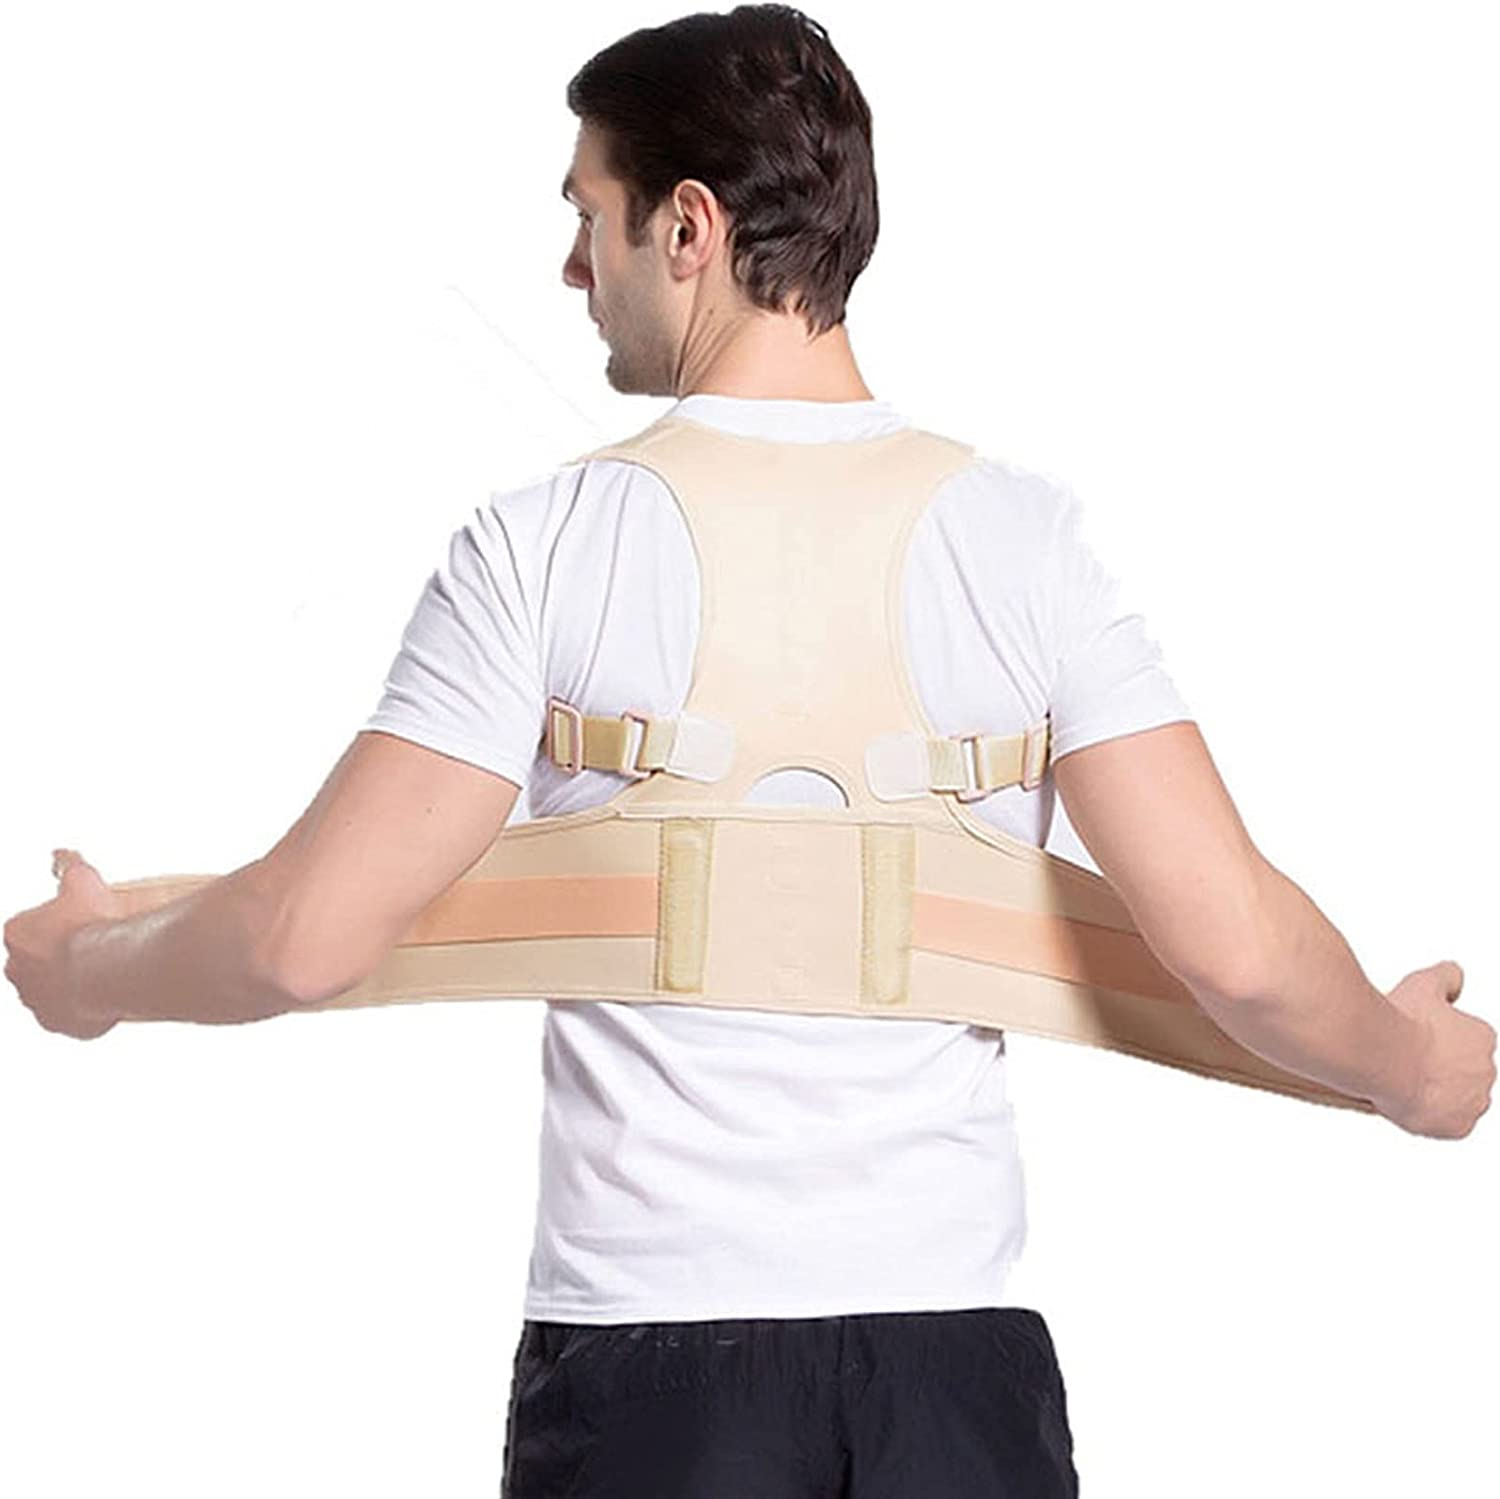 LQMM New product! New type Adjustable Choice Sitting Posture Corrector Back Be Corset Support